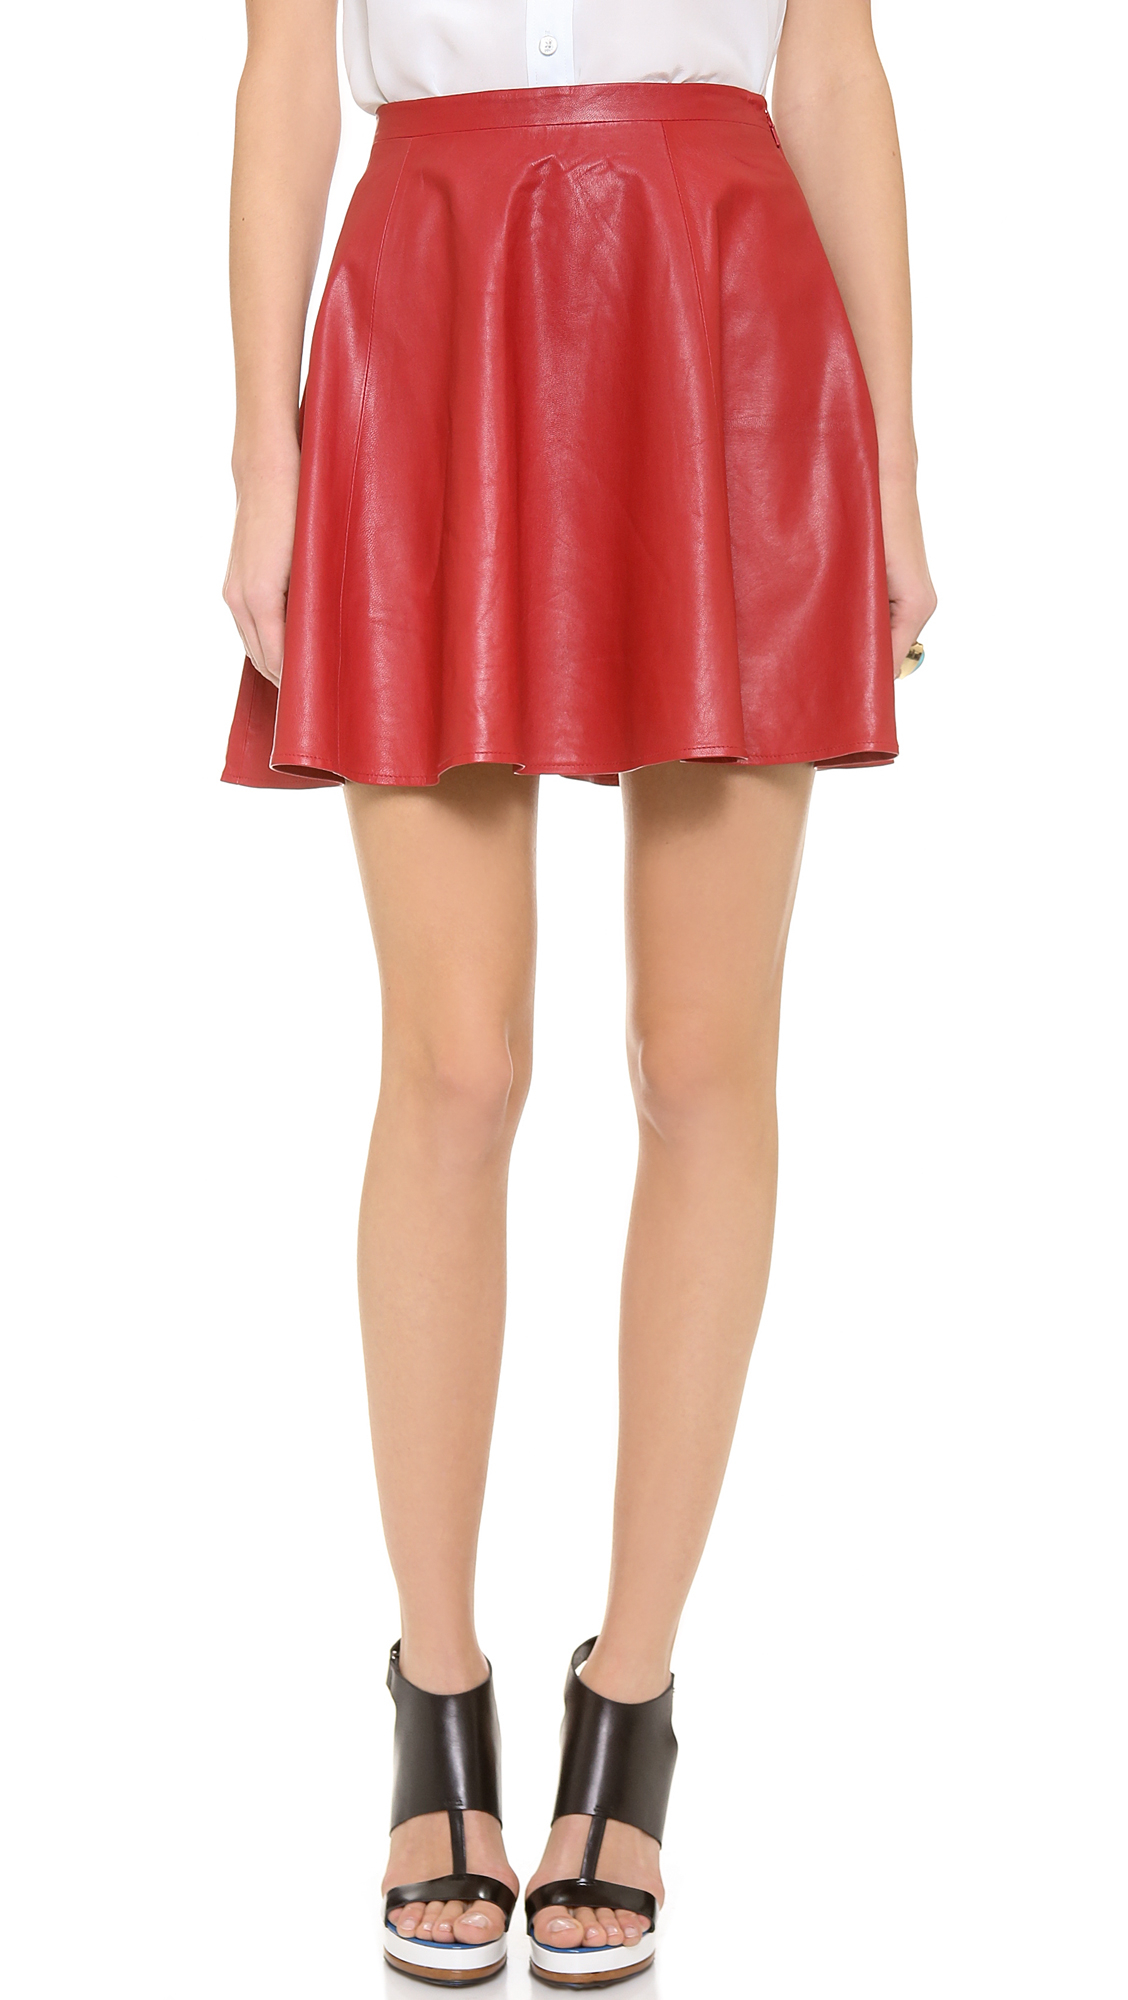 Lovers + Friends Lovers Friends Monica Rose Charlie Leather Skirt Red in Red | Lyst